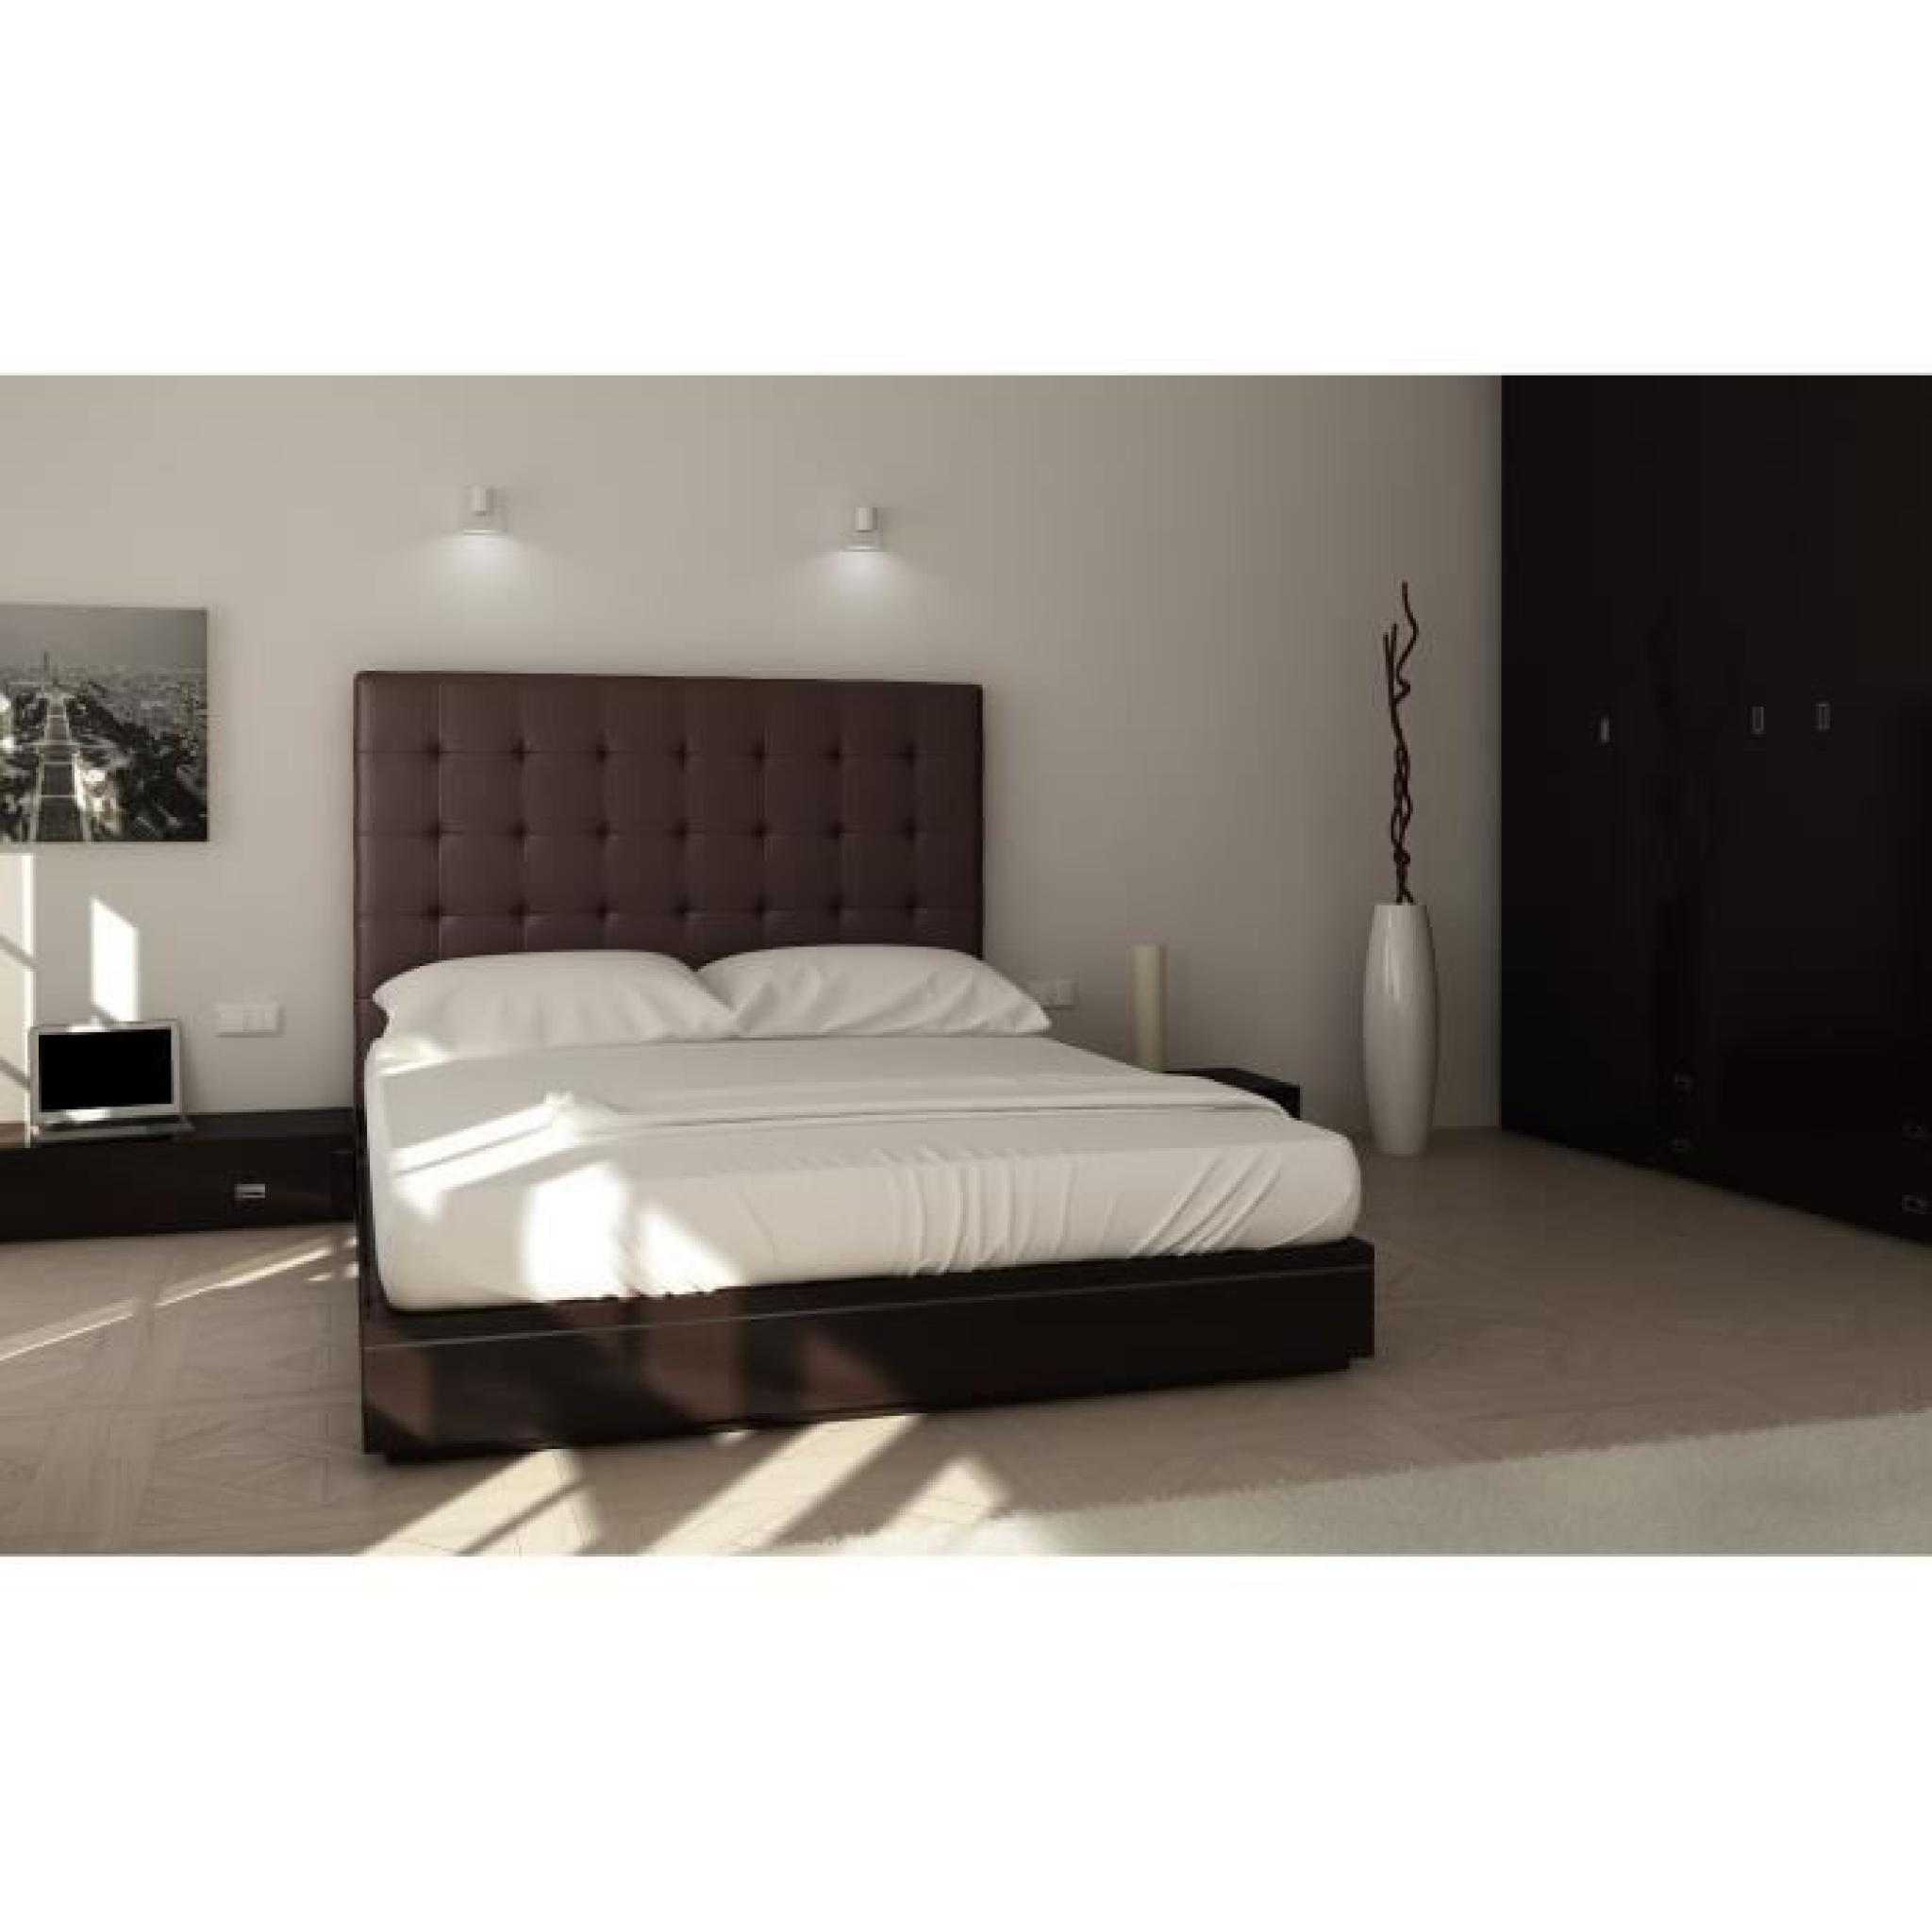 tete de lit originale pas cher maison design. Black Bedroom Furniture Sets. Home Design Ideas